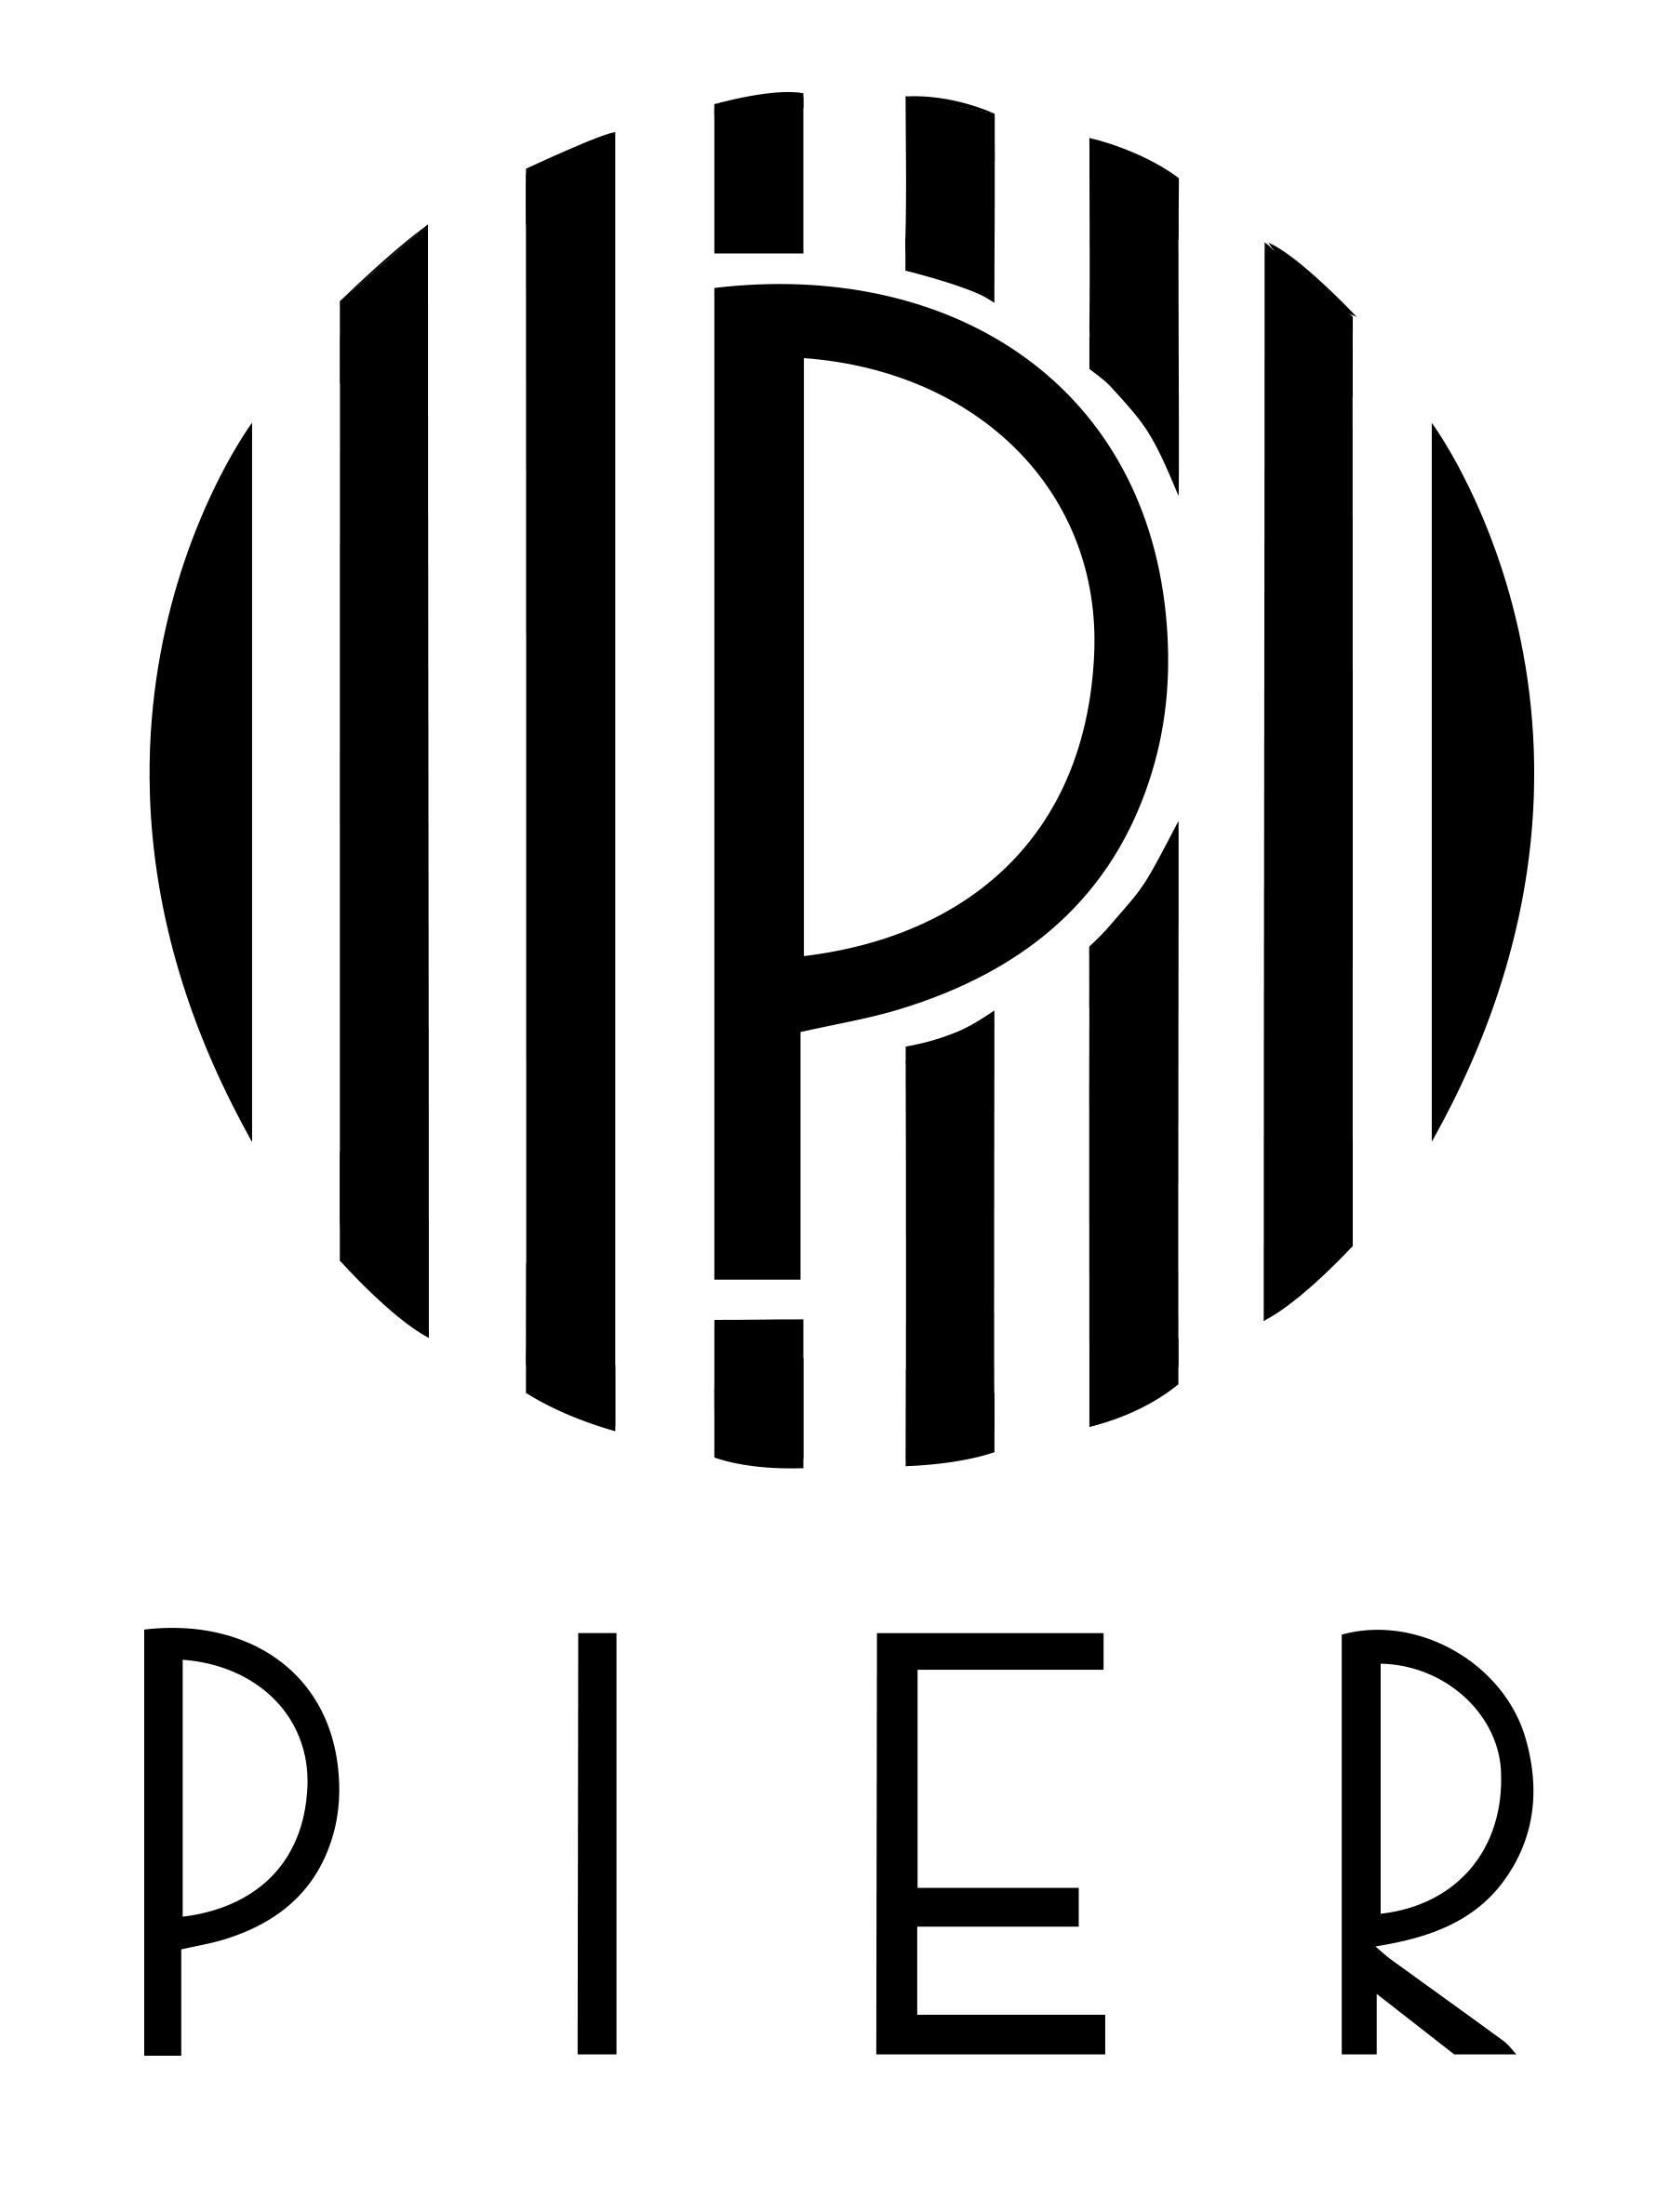 EXPERIENCED WAIT STAFF & BAR TENDERS at Pier Port Melbourne